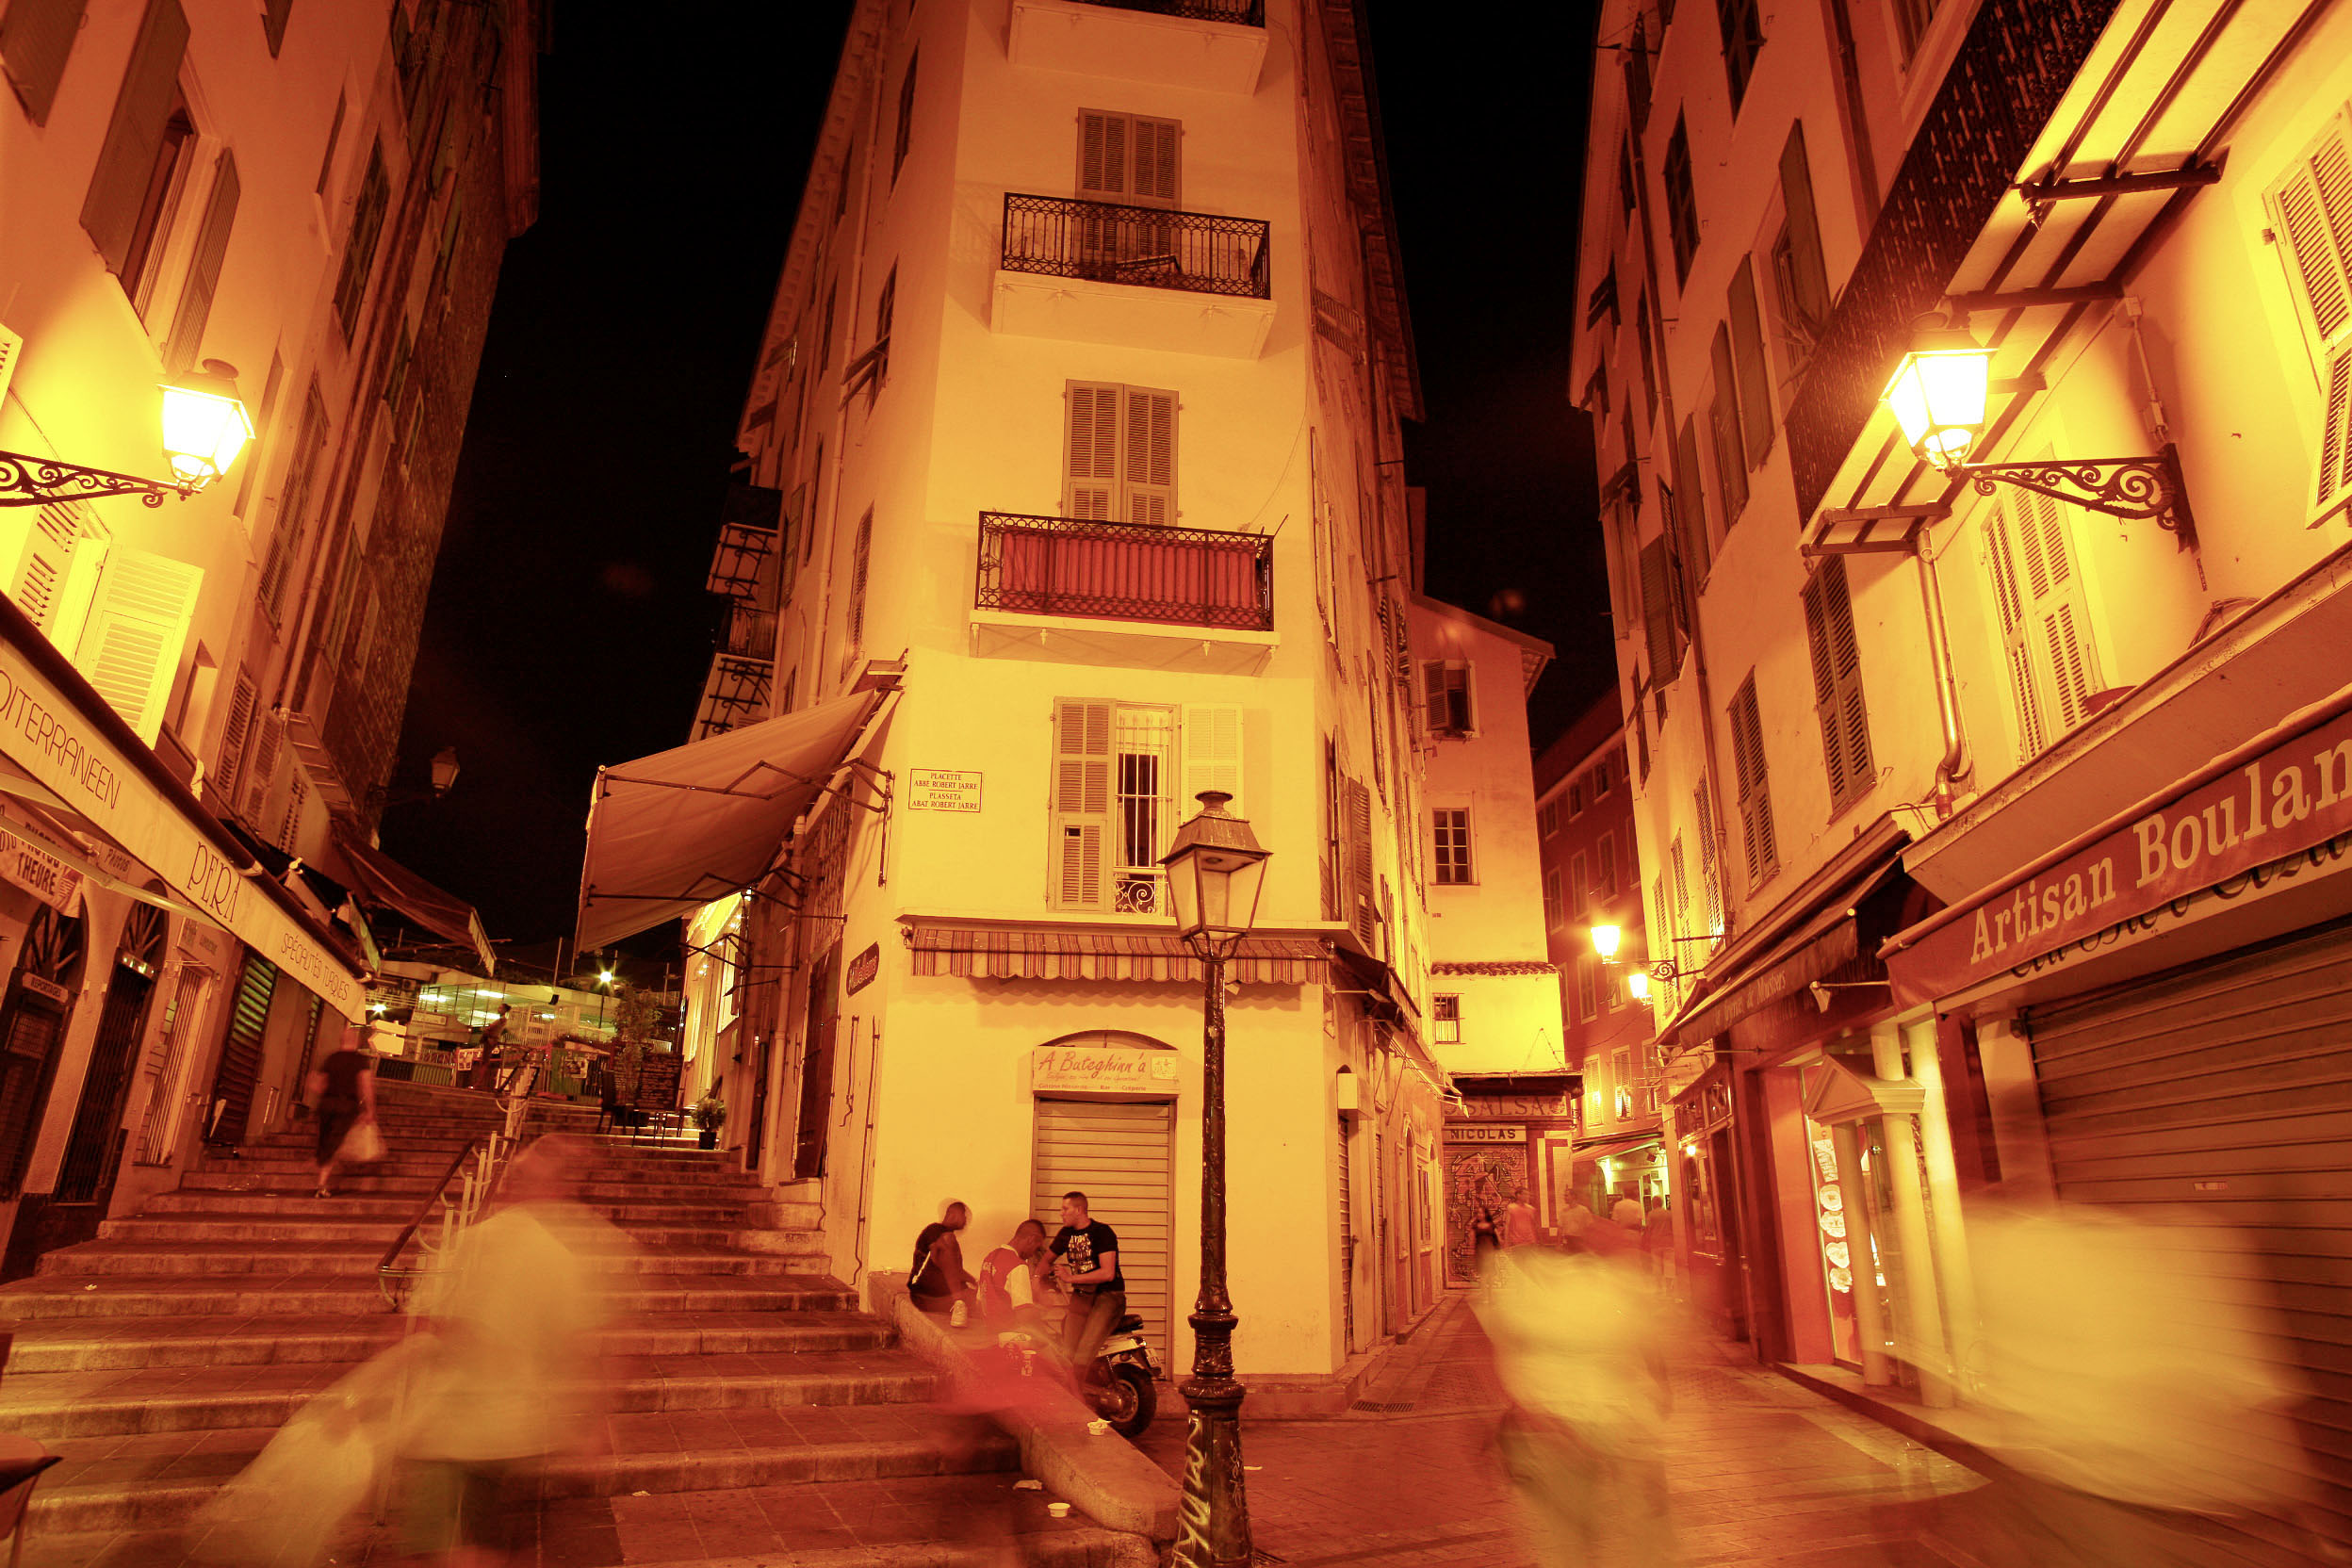 France, Cote d´Azur, Nice, Nightscene at the Placette Abbe Robert Jarre  ©  Reiner Riedler